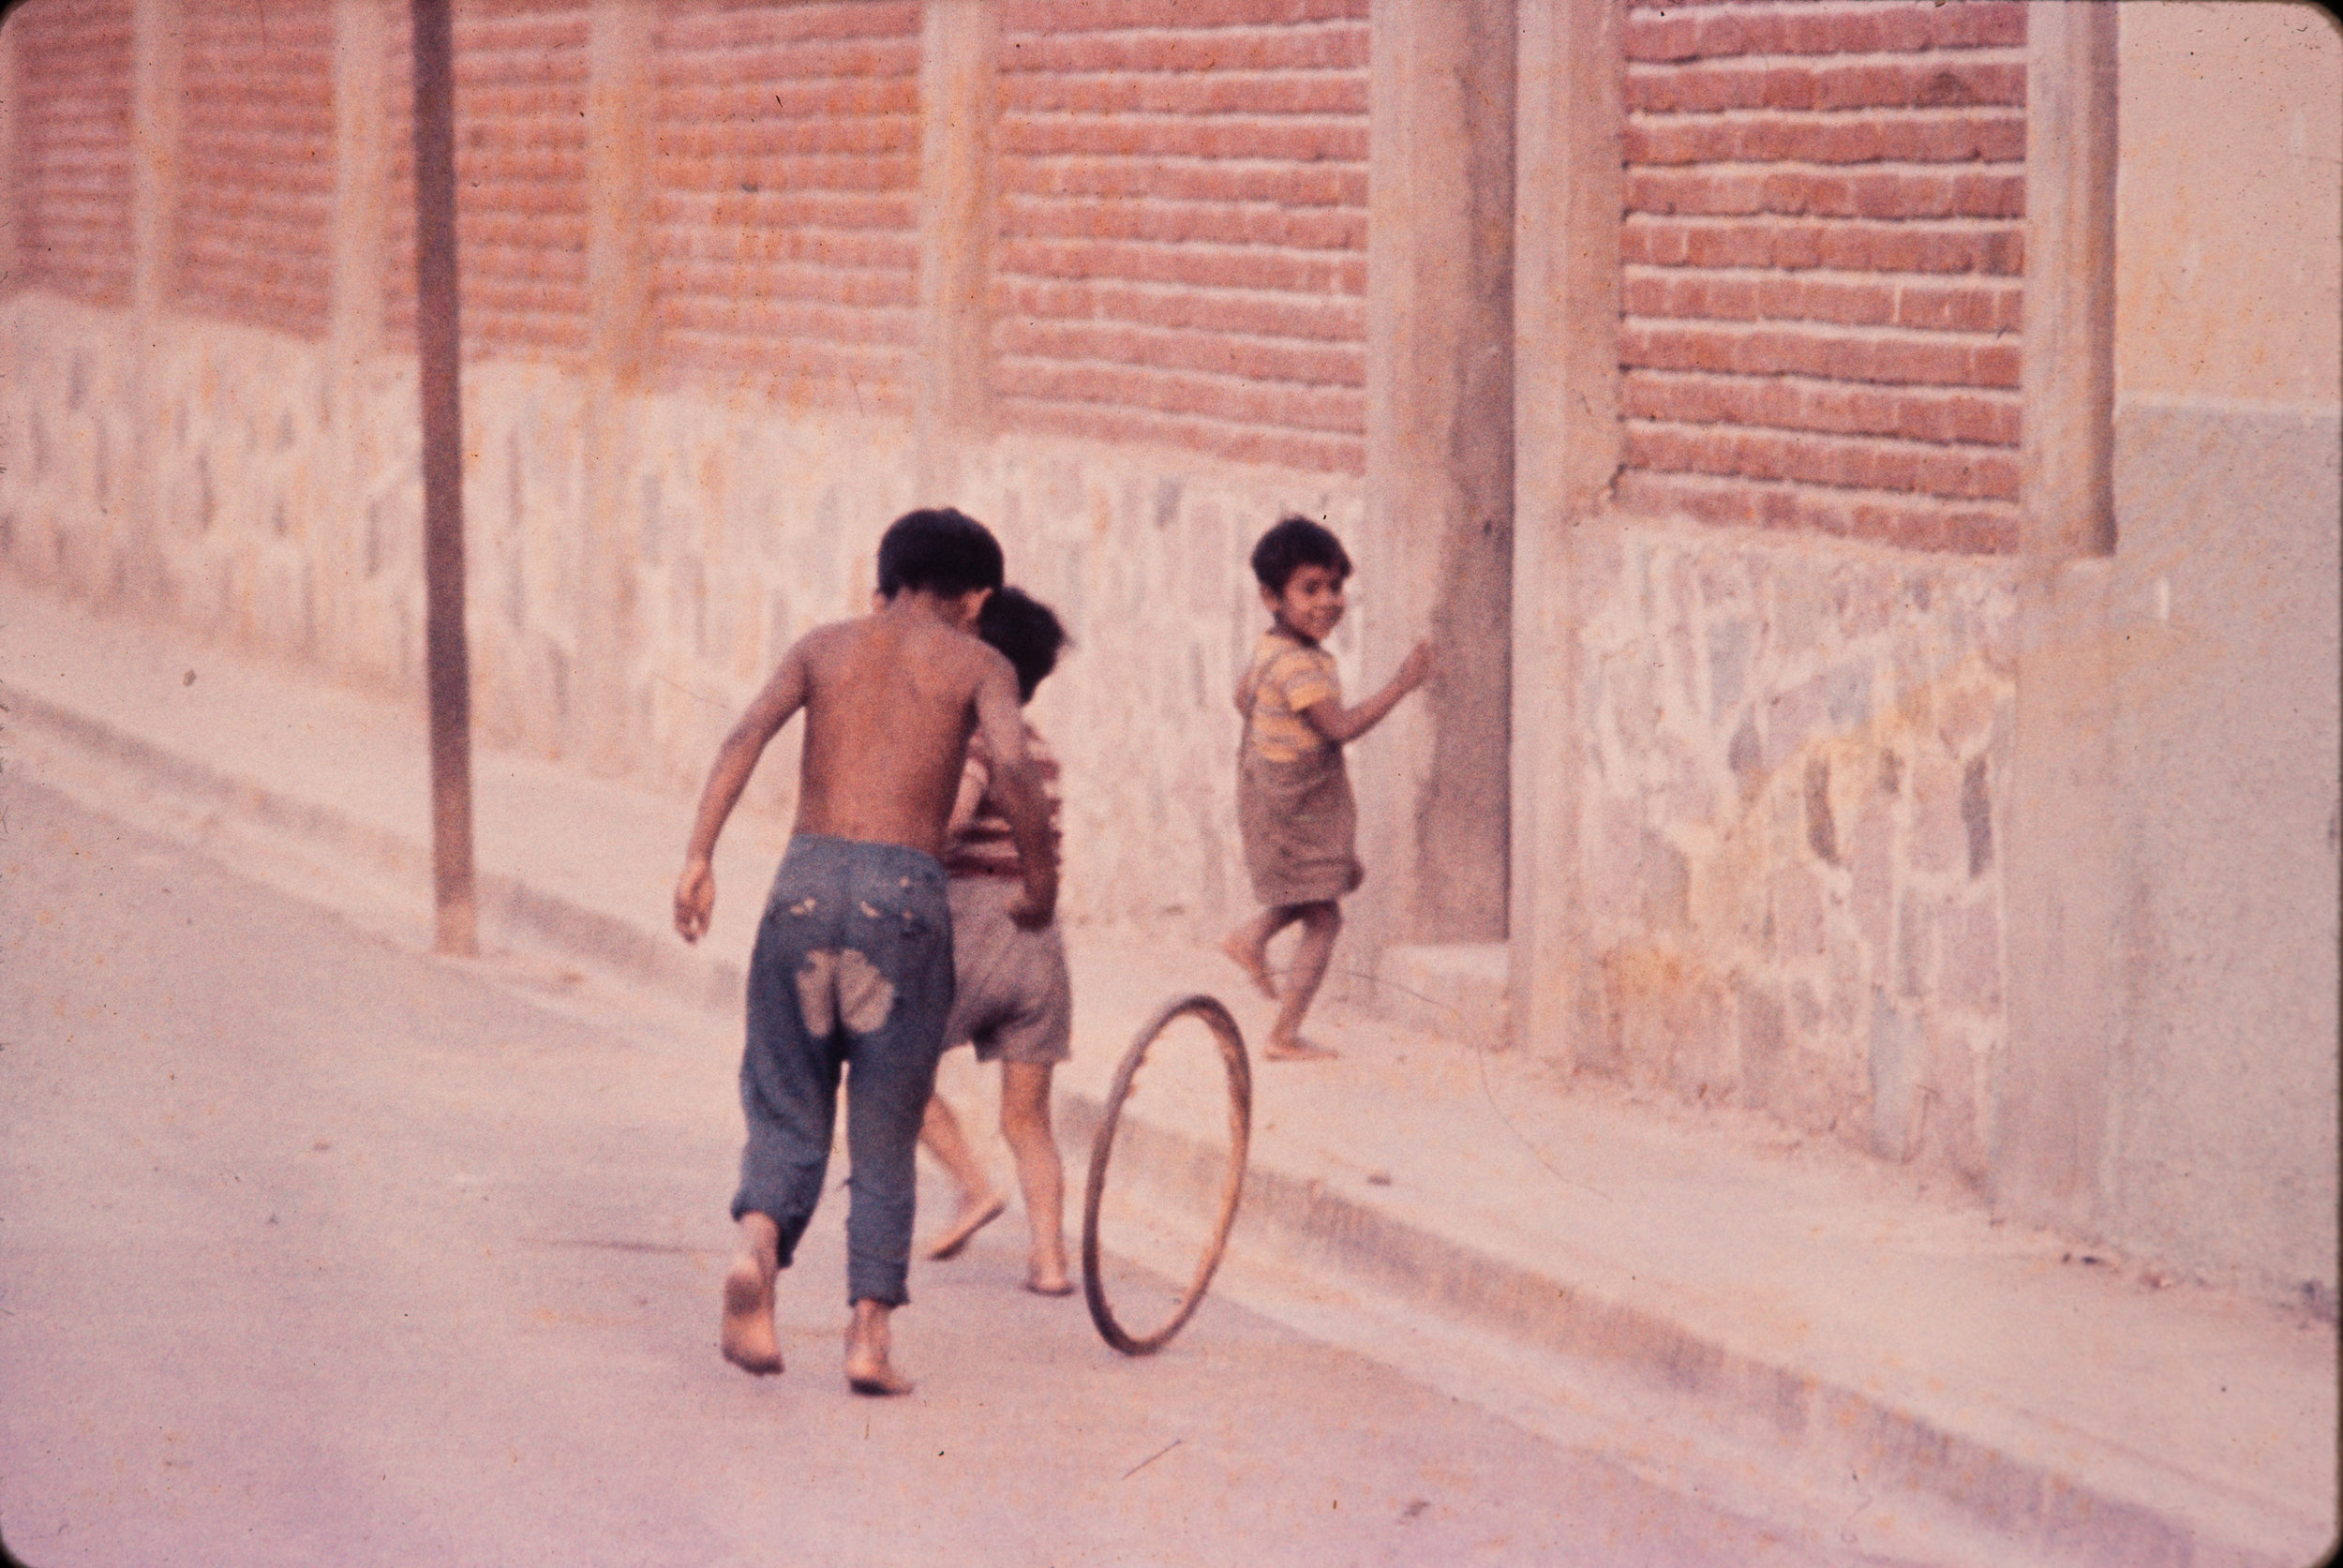 Boys playing with wheel, Mexico, 1957